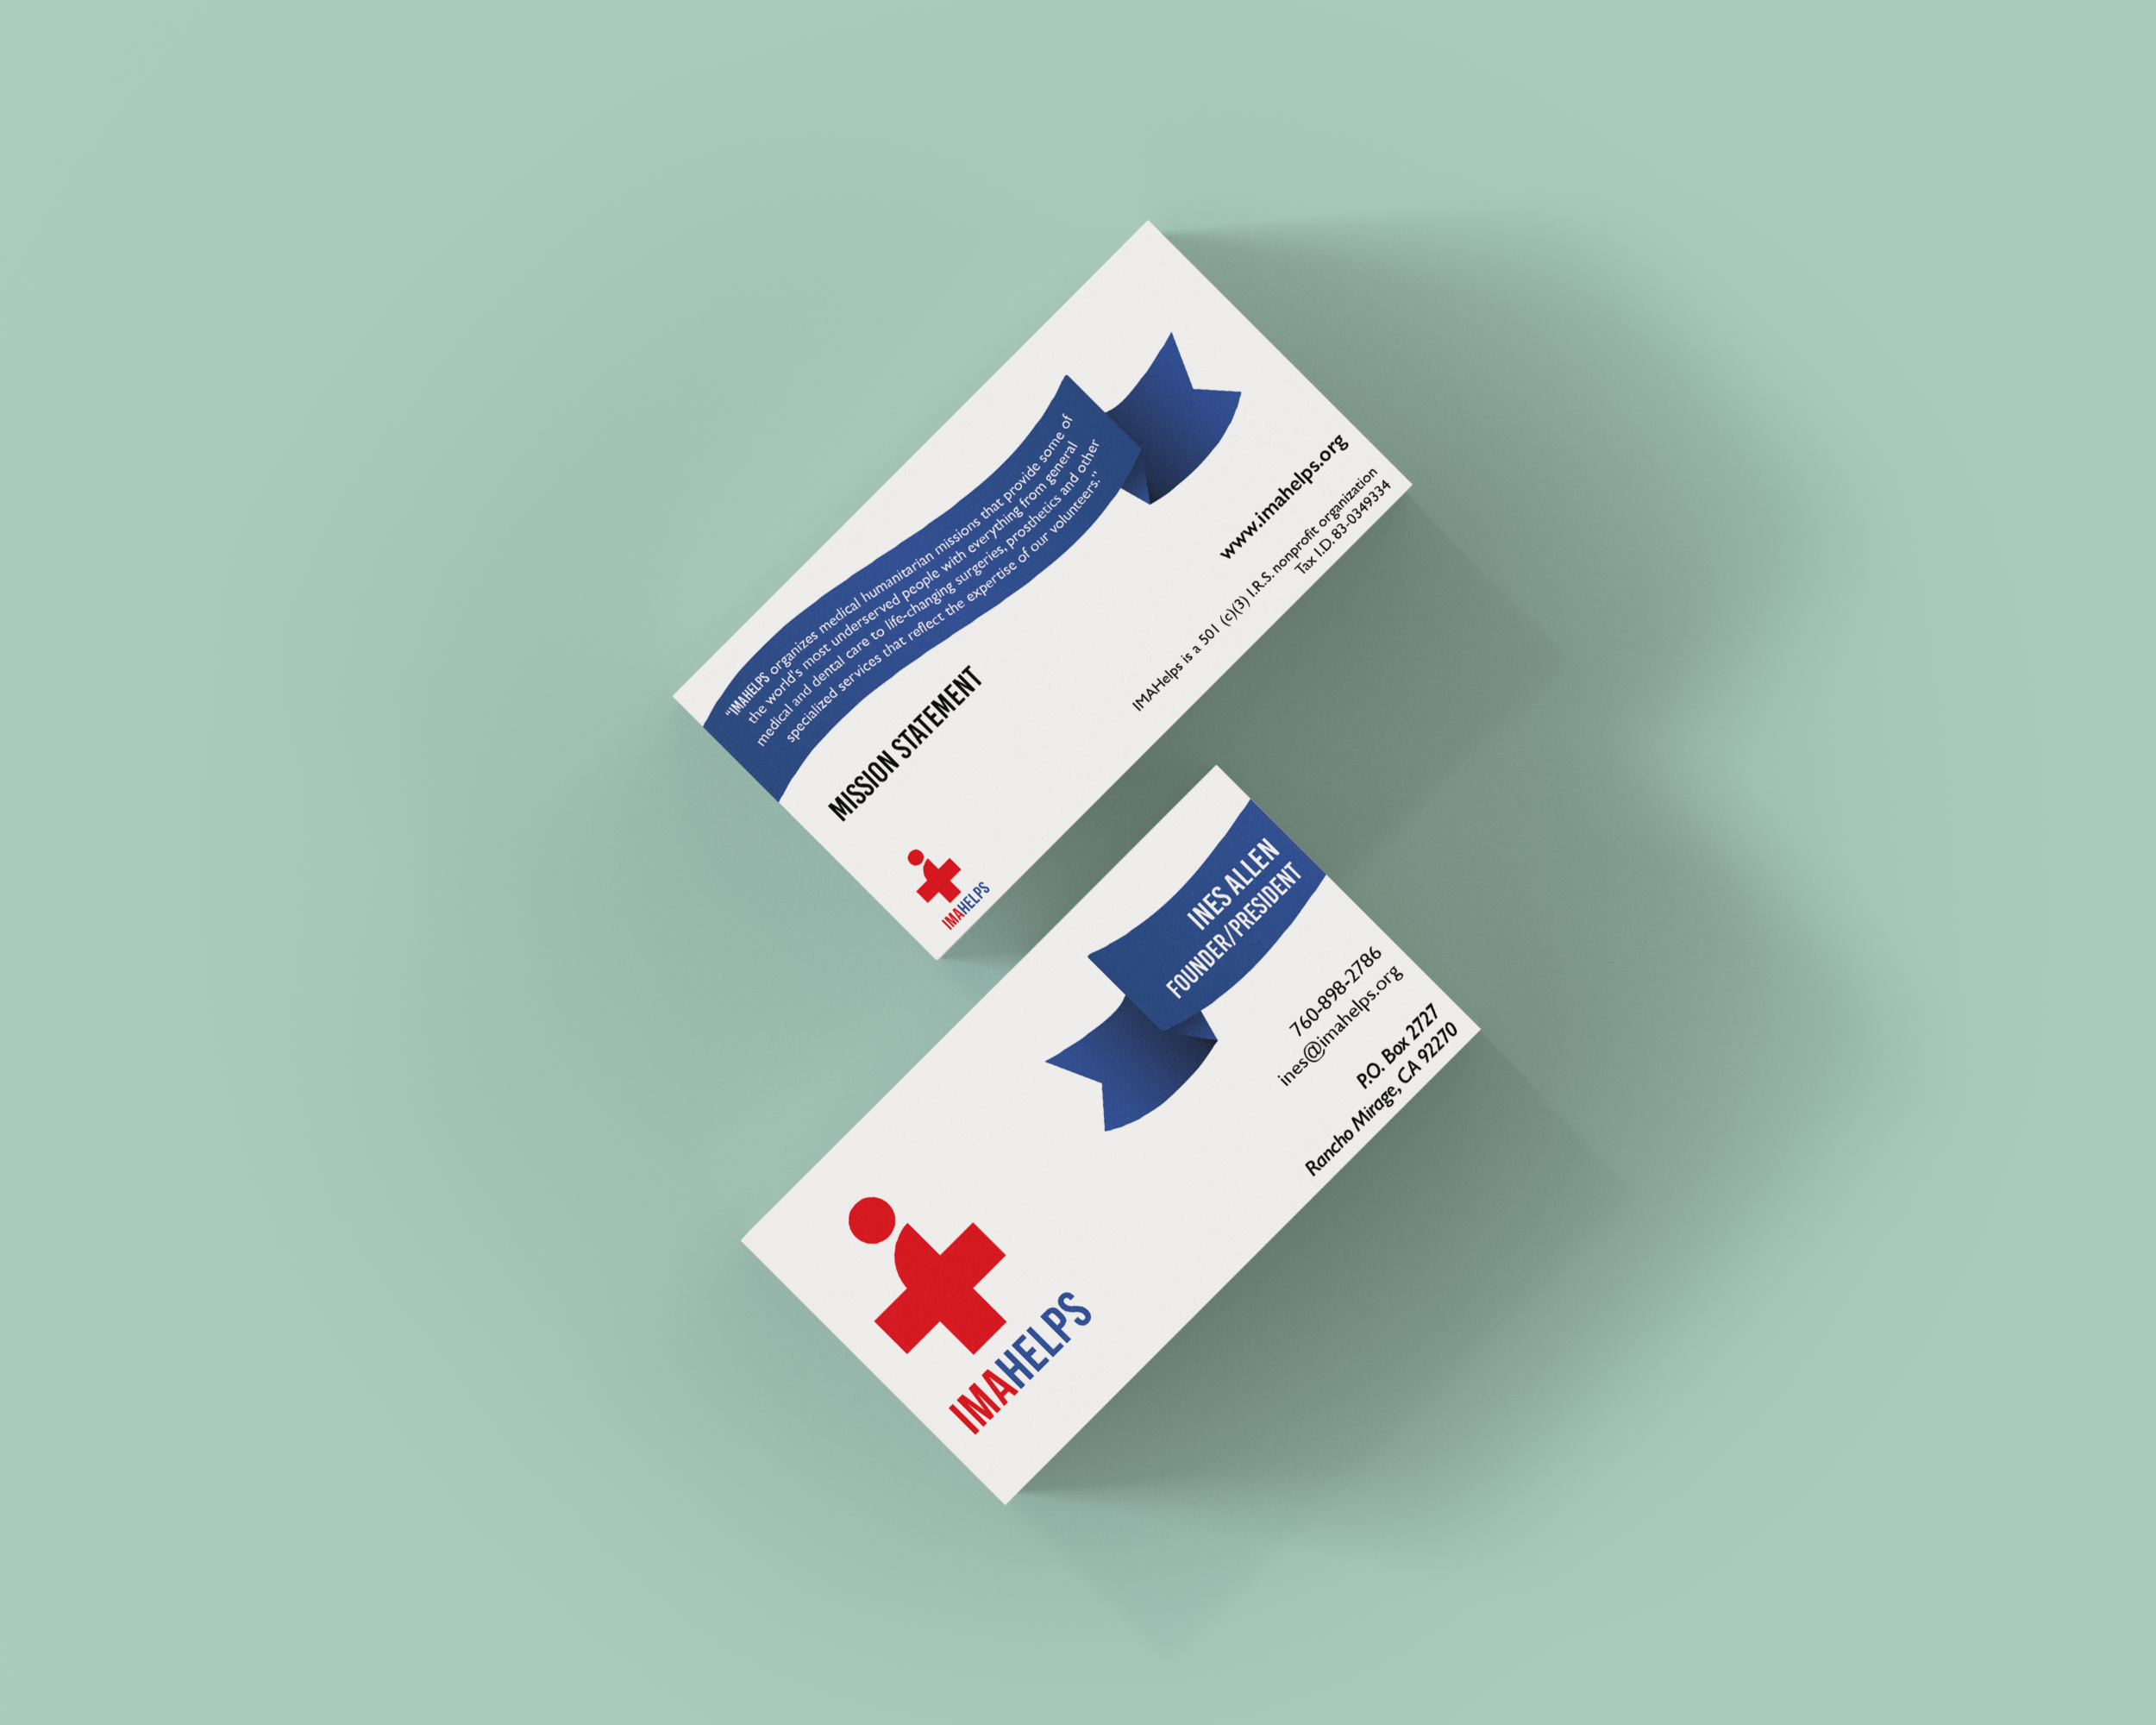 imahelps business cards mockup.png